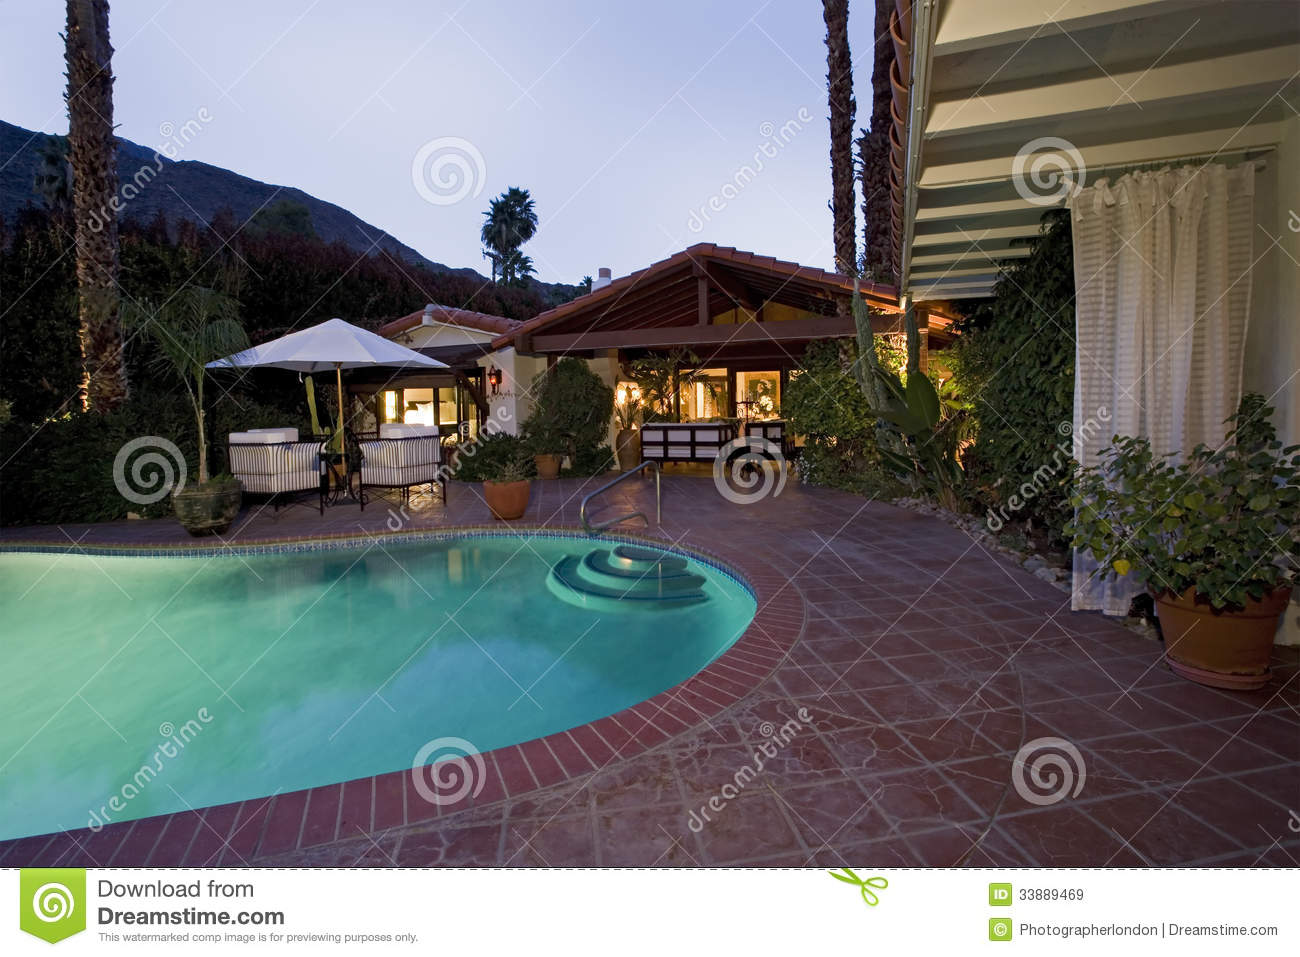 Swimming Pool gainst Modern House oyalty Free Stock Images ... - ^